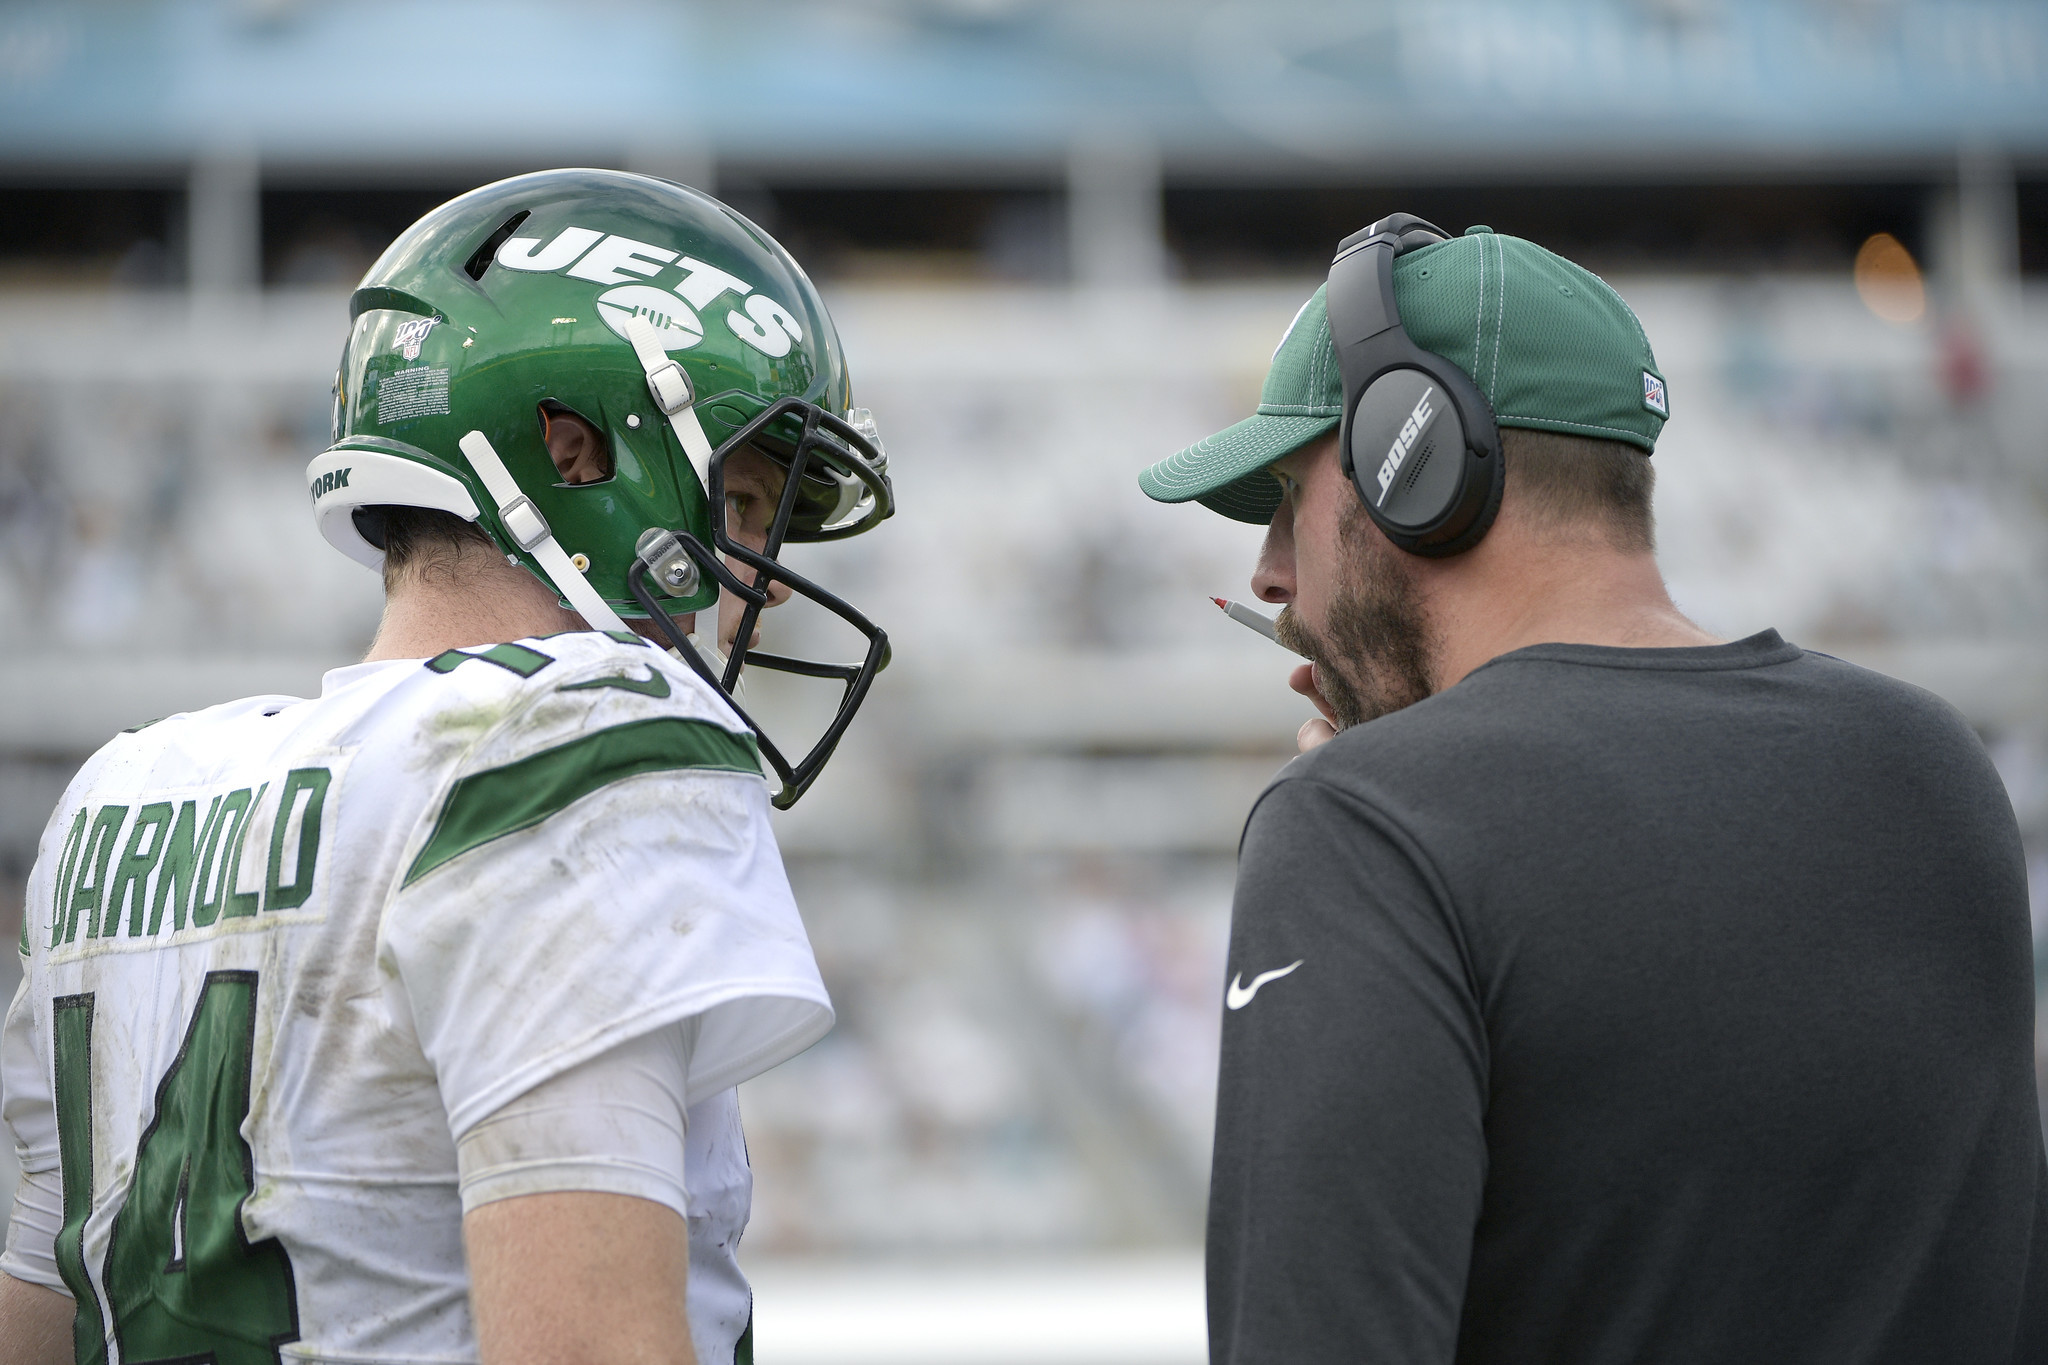 Adam Gase says he was 'bitching' to Sam Darnold about a screw-up by another Jets player during sideline spat